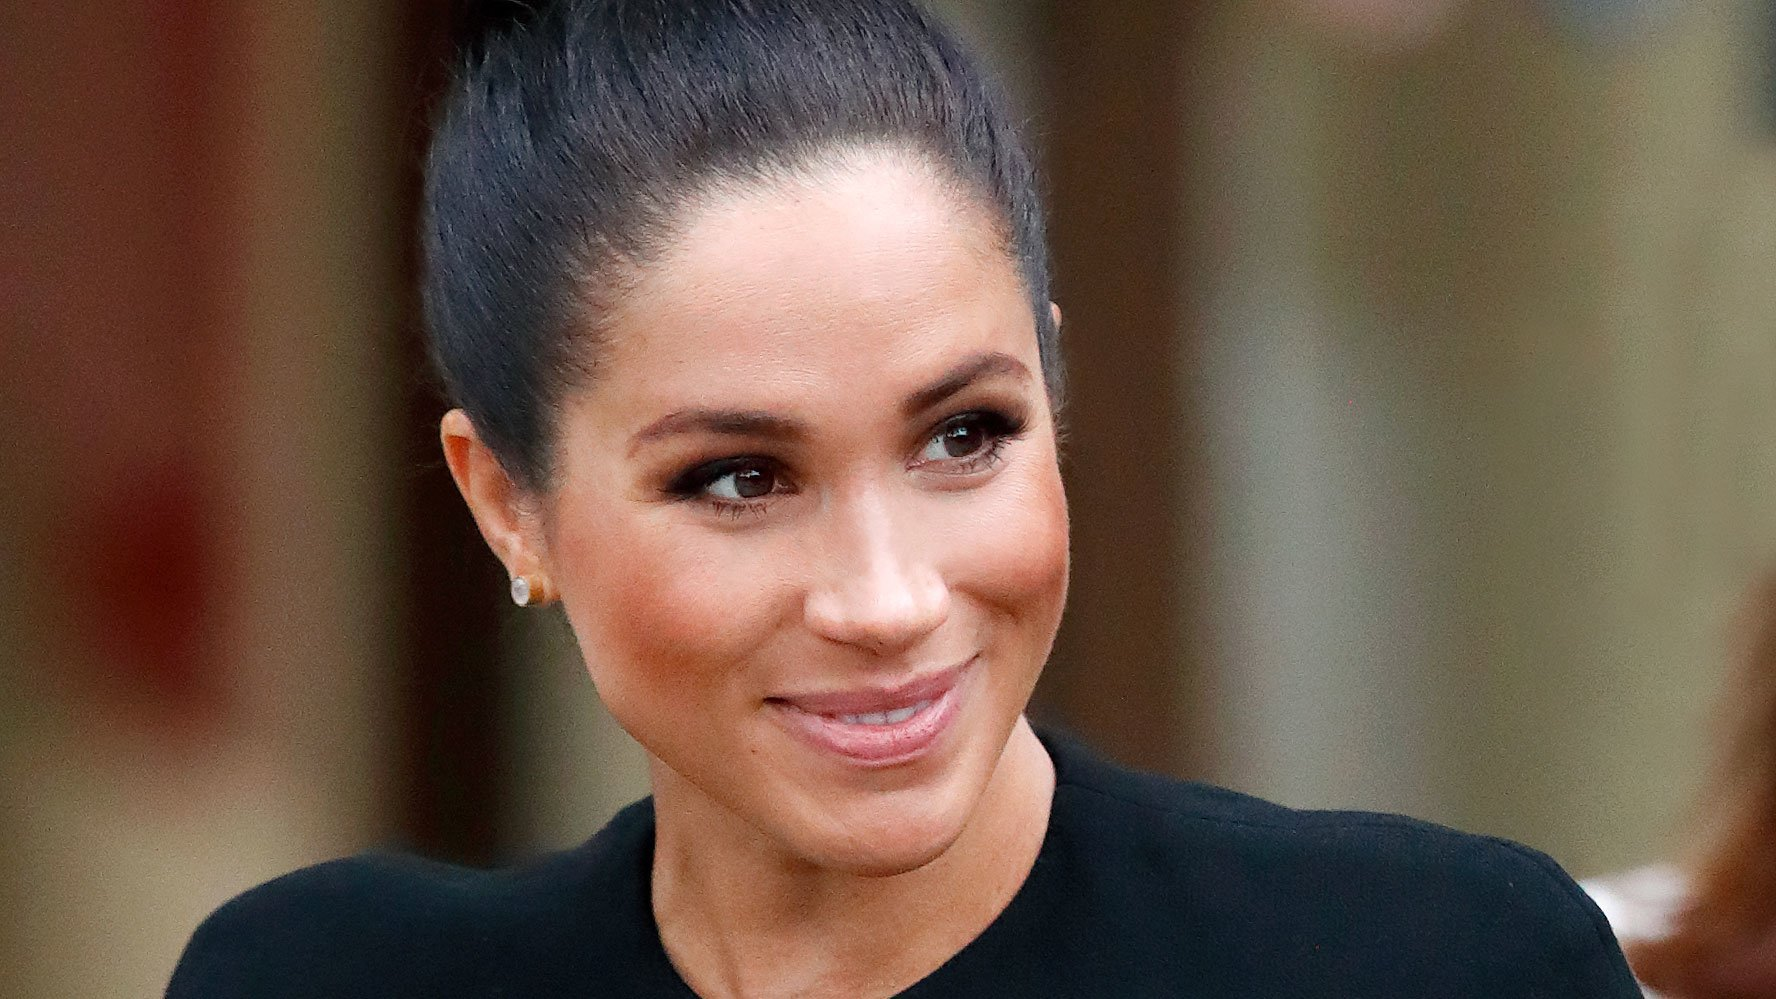 Meghan Markle will appear as guest editor in Britain's Vogue for the September issue